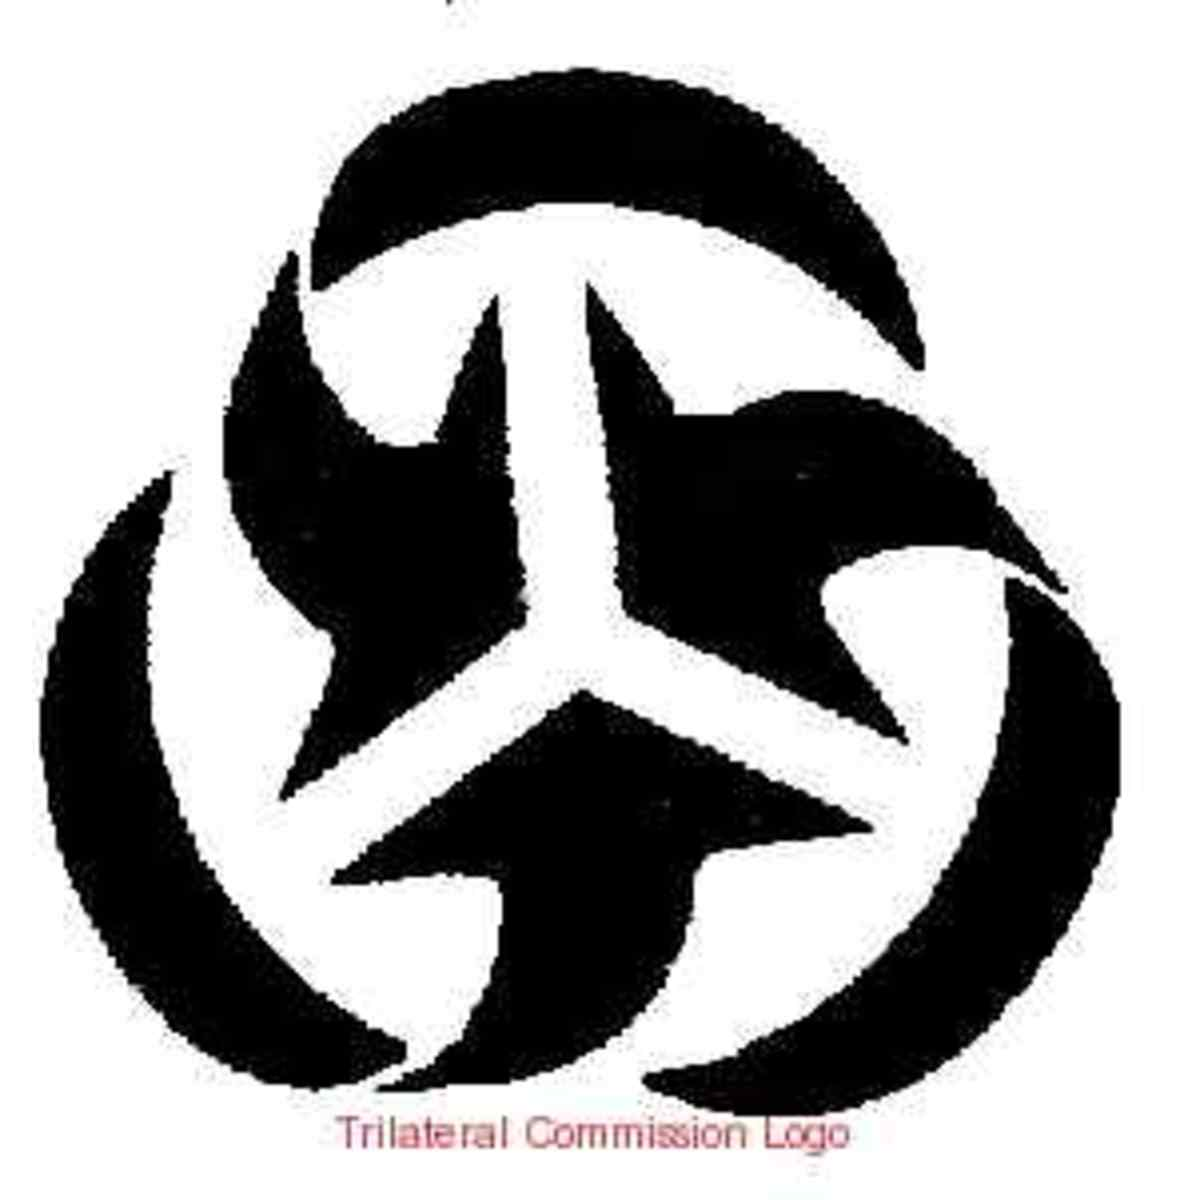 The Trilateral Commission operates in secret!